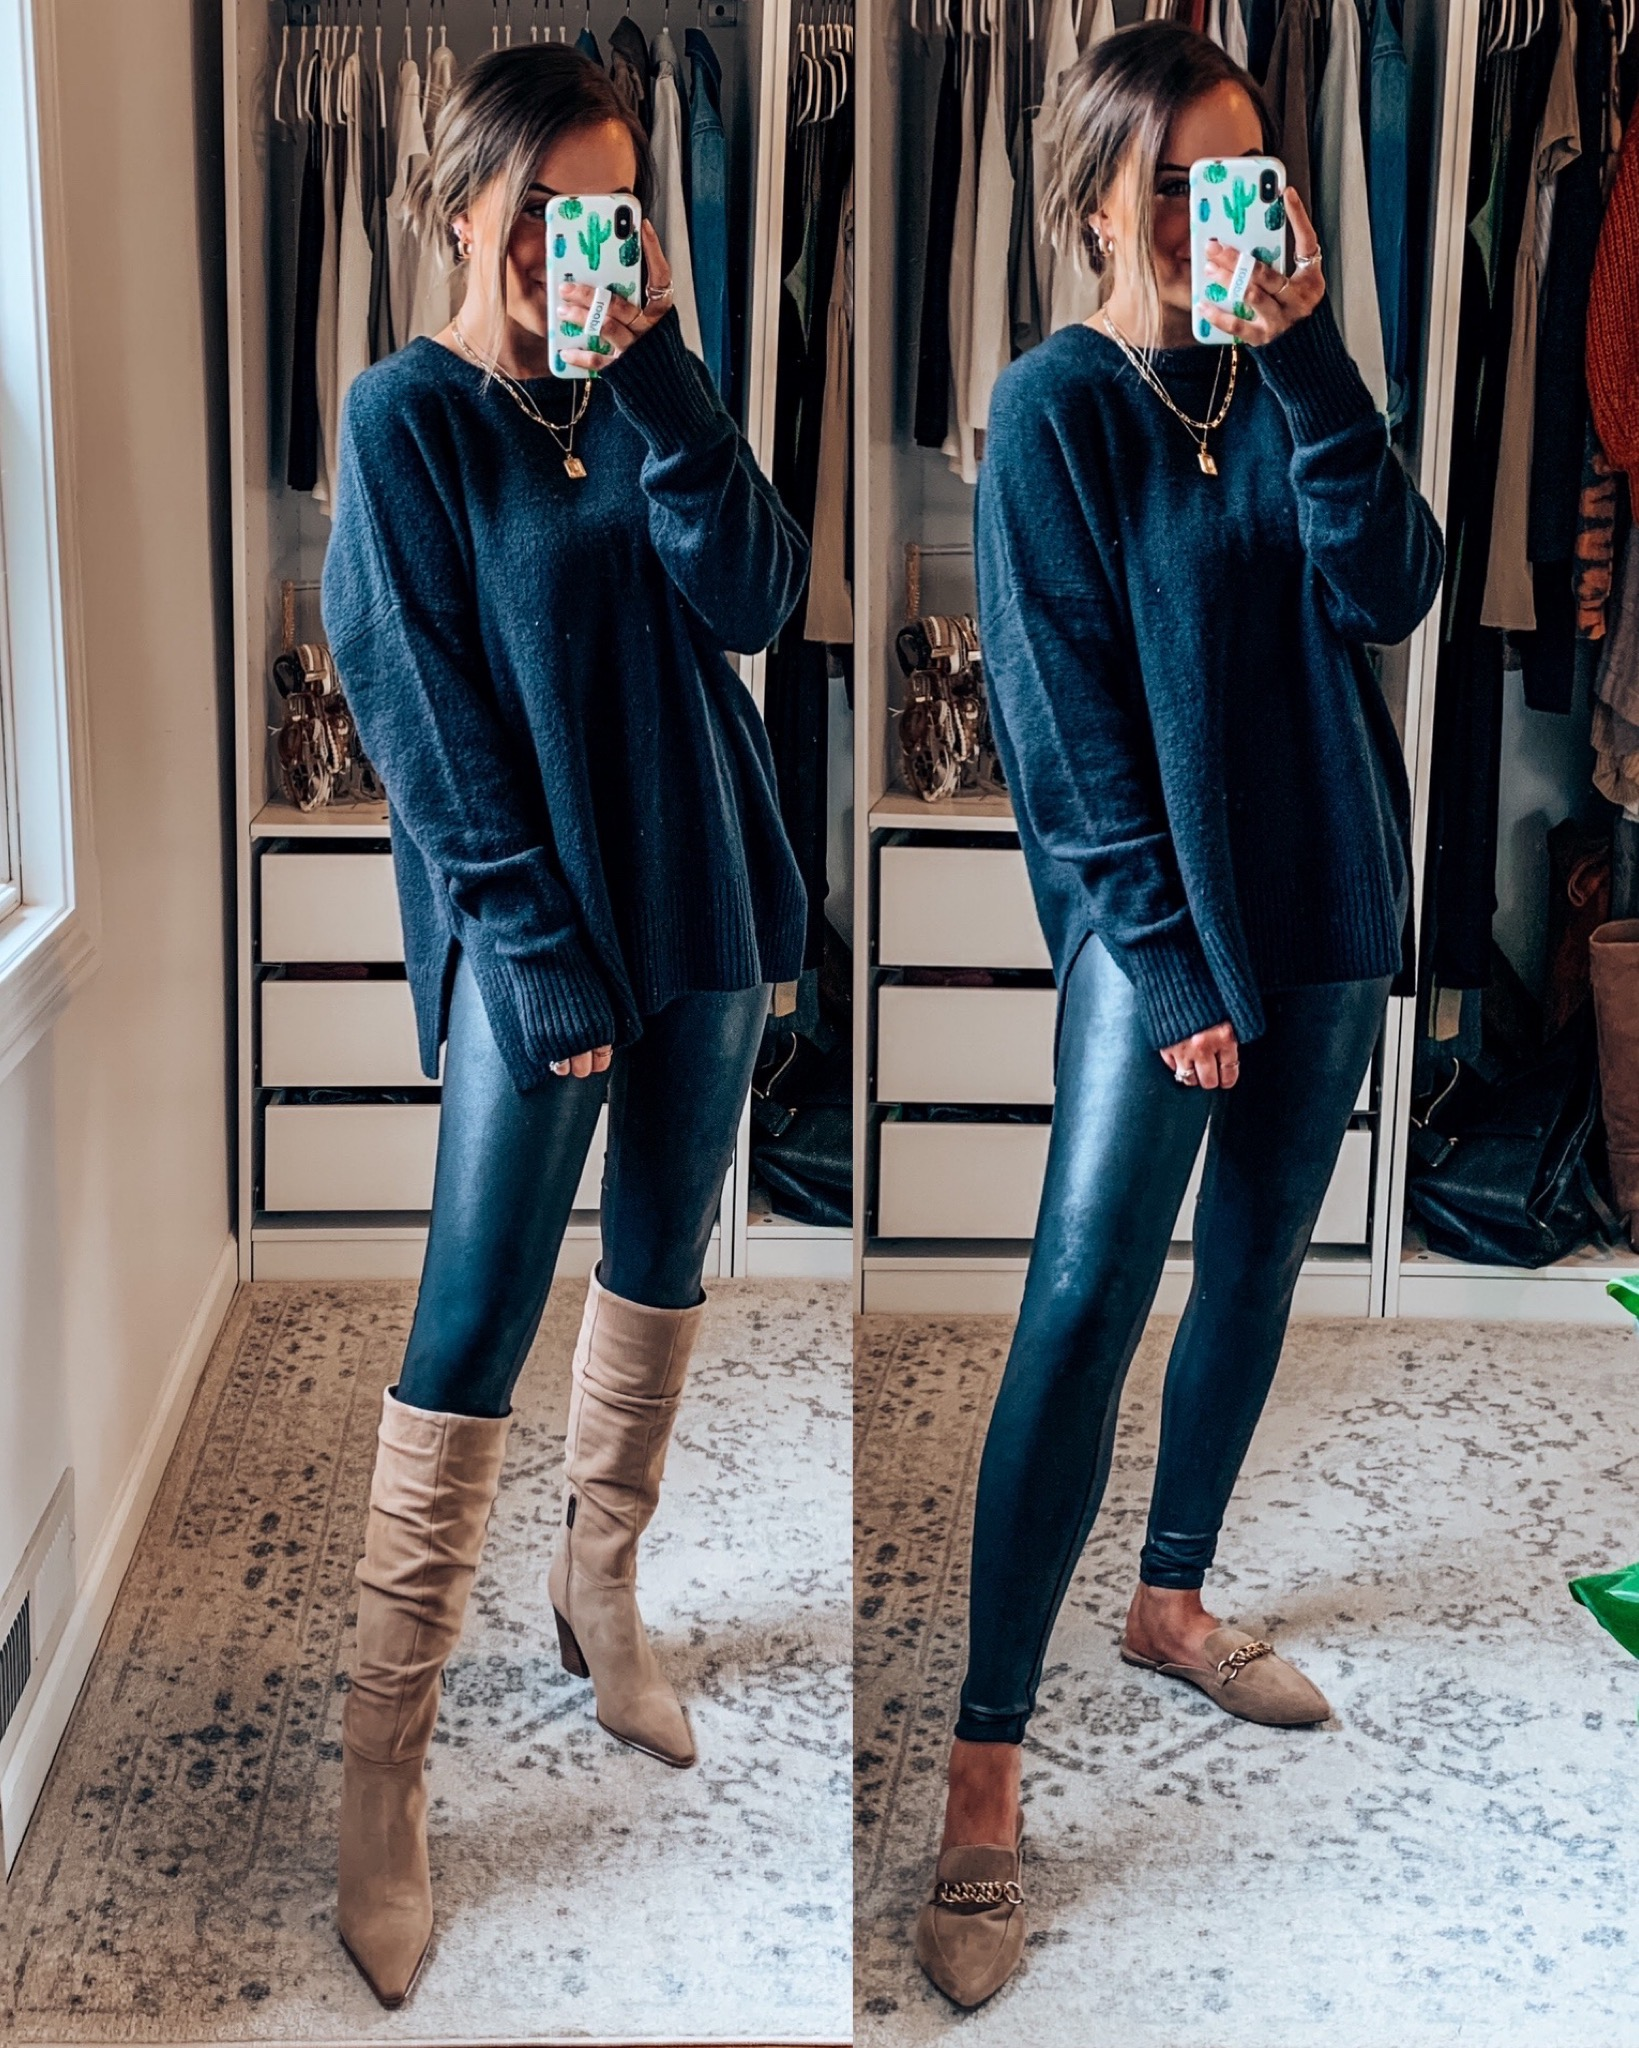 Fall NSale Outfit Round Up ; Style Blogger Lauren Meyer of The Lo Meyer Blog shares 25+ Affordable Fall NSale Outfits